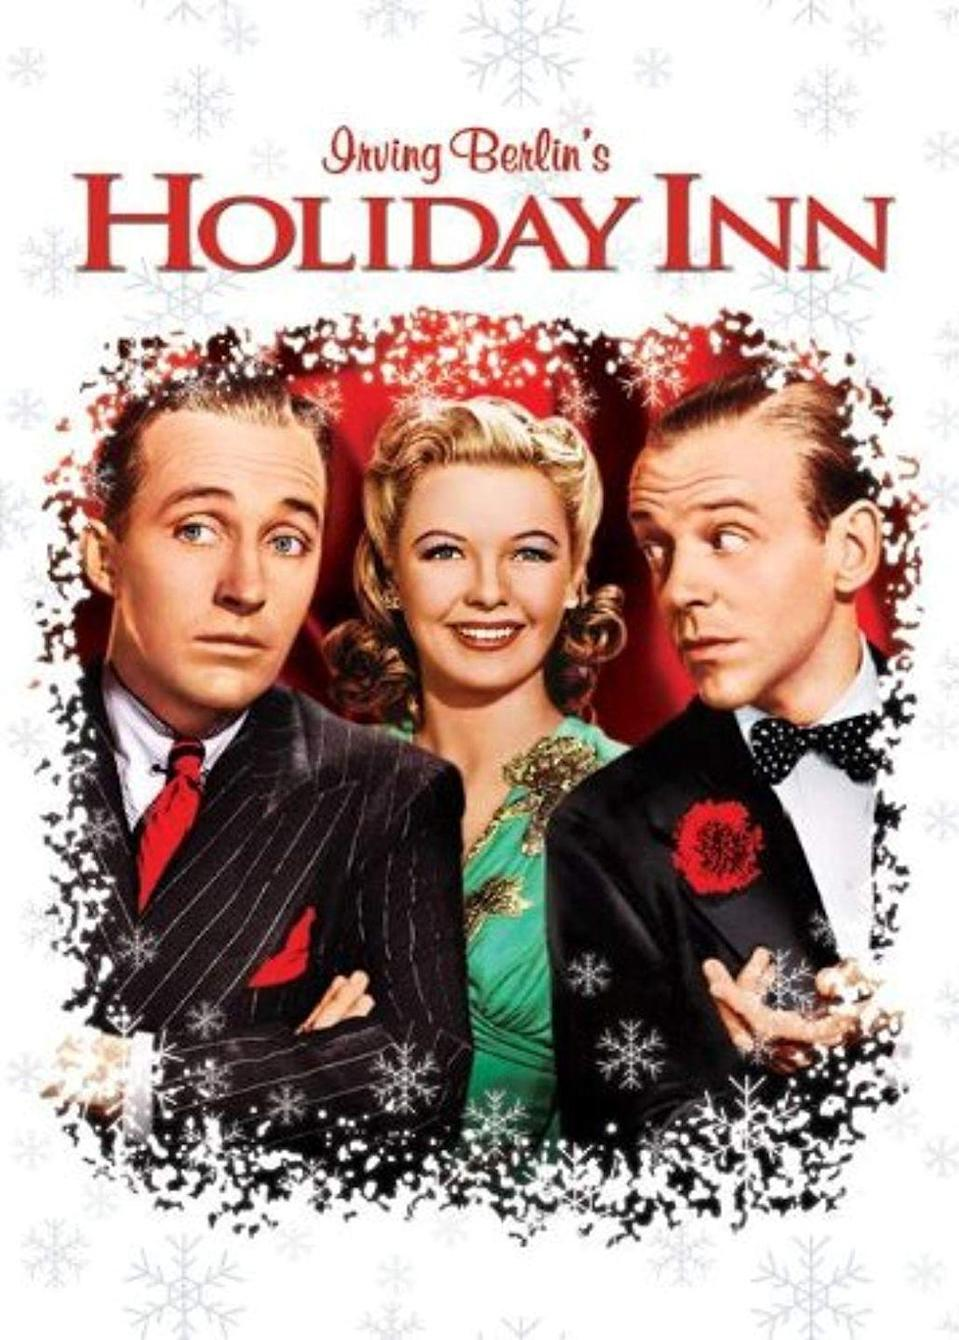 """<p>This 1942 Irving Berlin musical starring Bing Crosby and Fred Astaire features a song for each holiday of the year, but it begins and ends with Christmas.</p><p><a class=""""link rapid-noclick-resp"""" href=""""https://www.amazon.com/Holiday-Inn-Bing-Crosby/dp/B000M39HB8/?tag=syn-yahoo-20&ascsubtag=%5Bartid%7C10055.g.1315%5Bsrc%7Cyahoo-us"""" rel=""""nofollow noopener"""" target=""""_blank"""" data-ylk=""""slk:WATCH NOW"""">WATCH NOW</a></p>"""